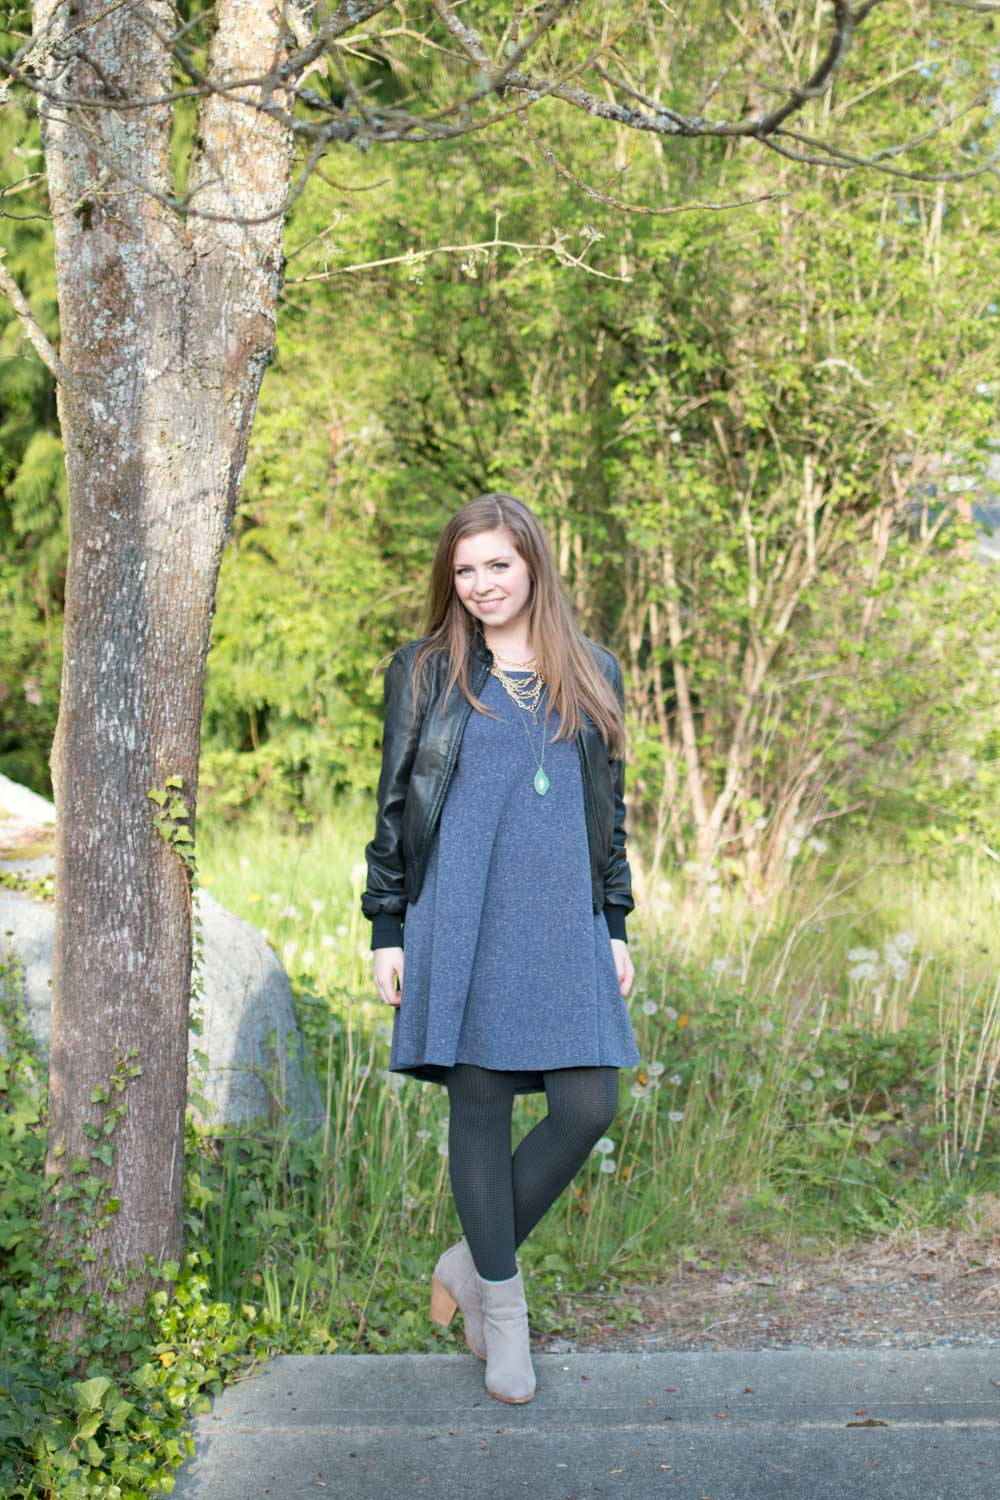 Blue Swing Dress and Patterend Tia Tights Outfit / hellorigby seattle fashion and style blog